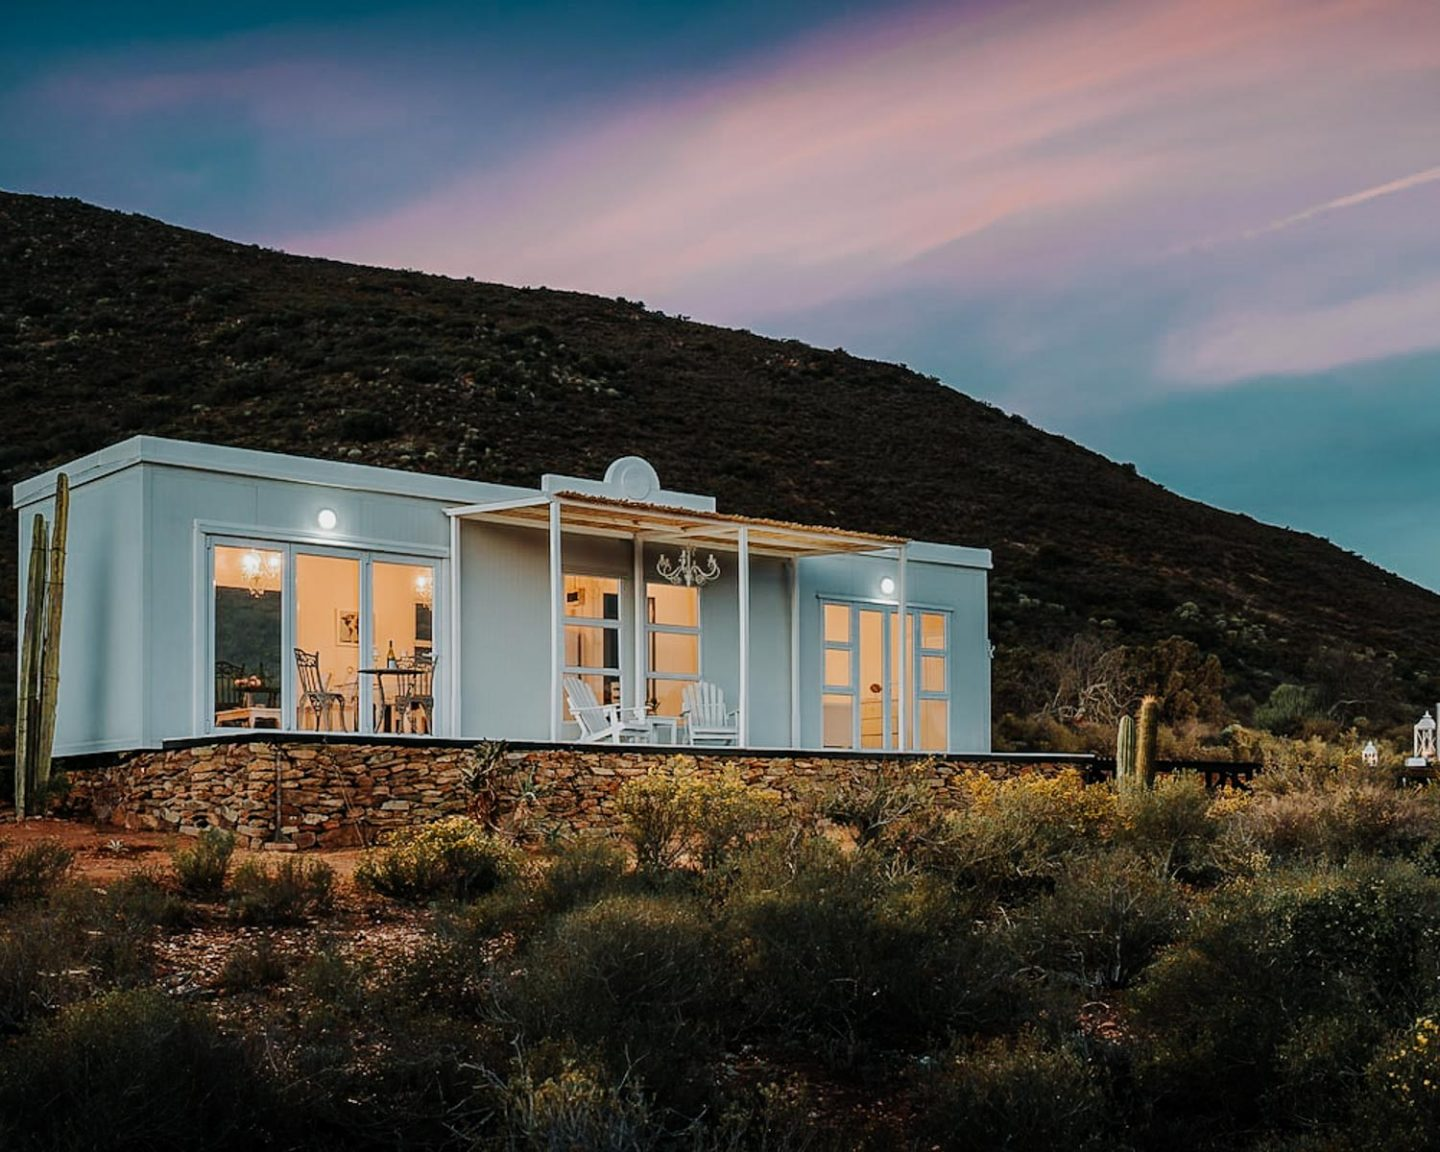 karoo romantic airbnbs in south africa